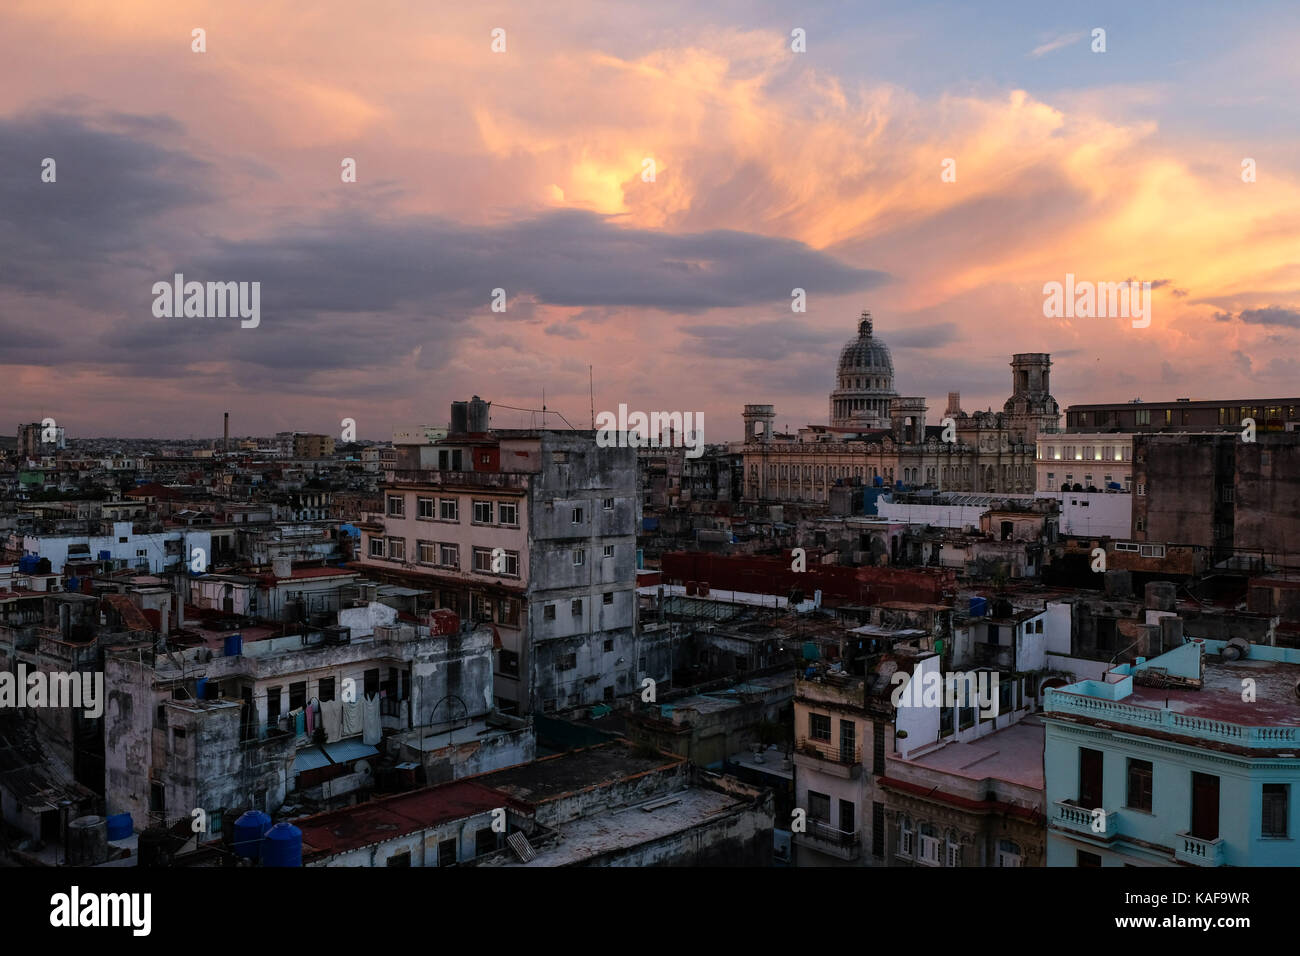 The view over the rooftops of Centro Habana and Habana Vieja at sunset during a hot summer in Havana, Cuba. - Stock Image